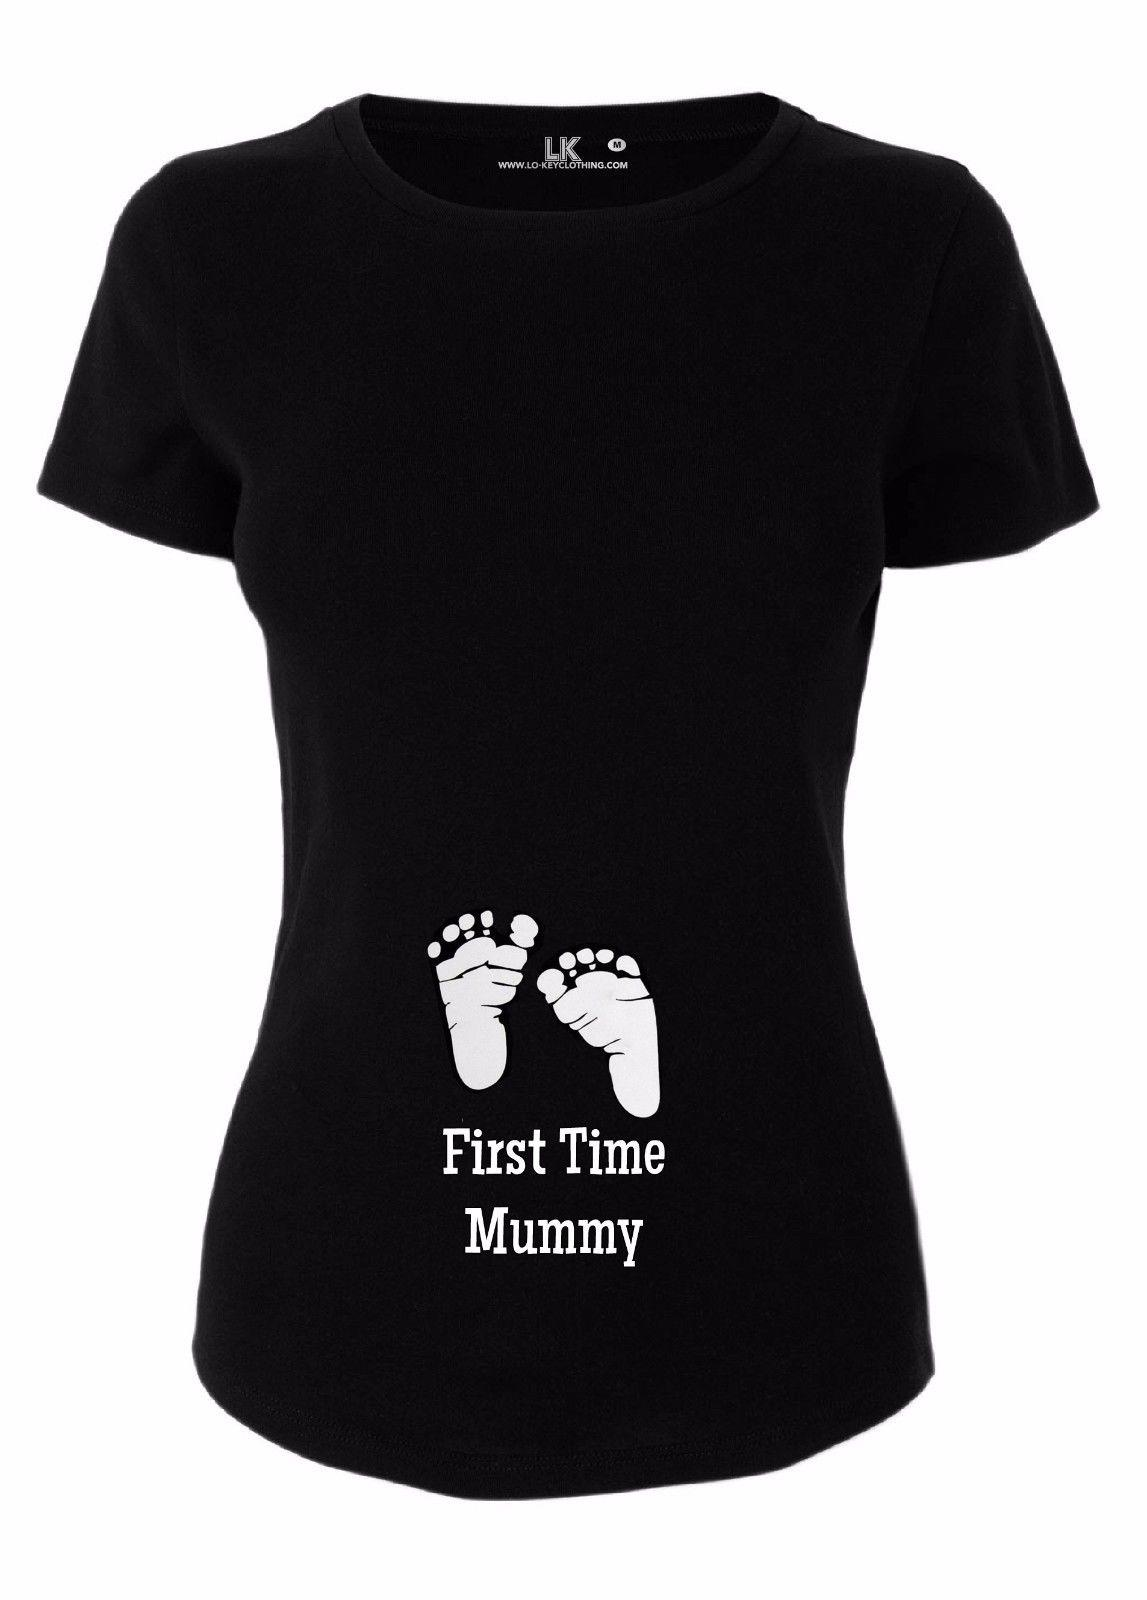 6a7722d69 T Shirts Baby Shower – EDGE Engineering and Consulting Limited